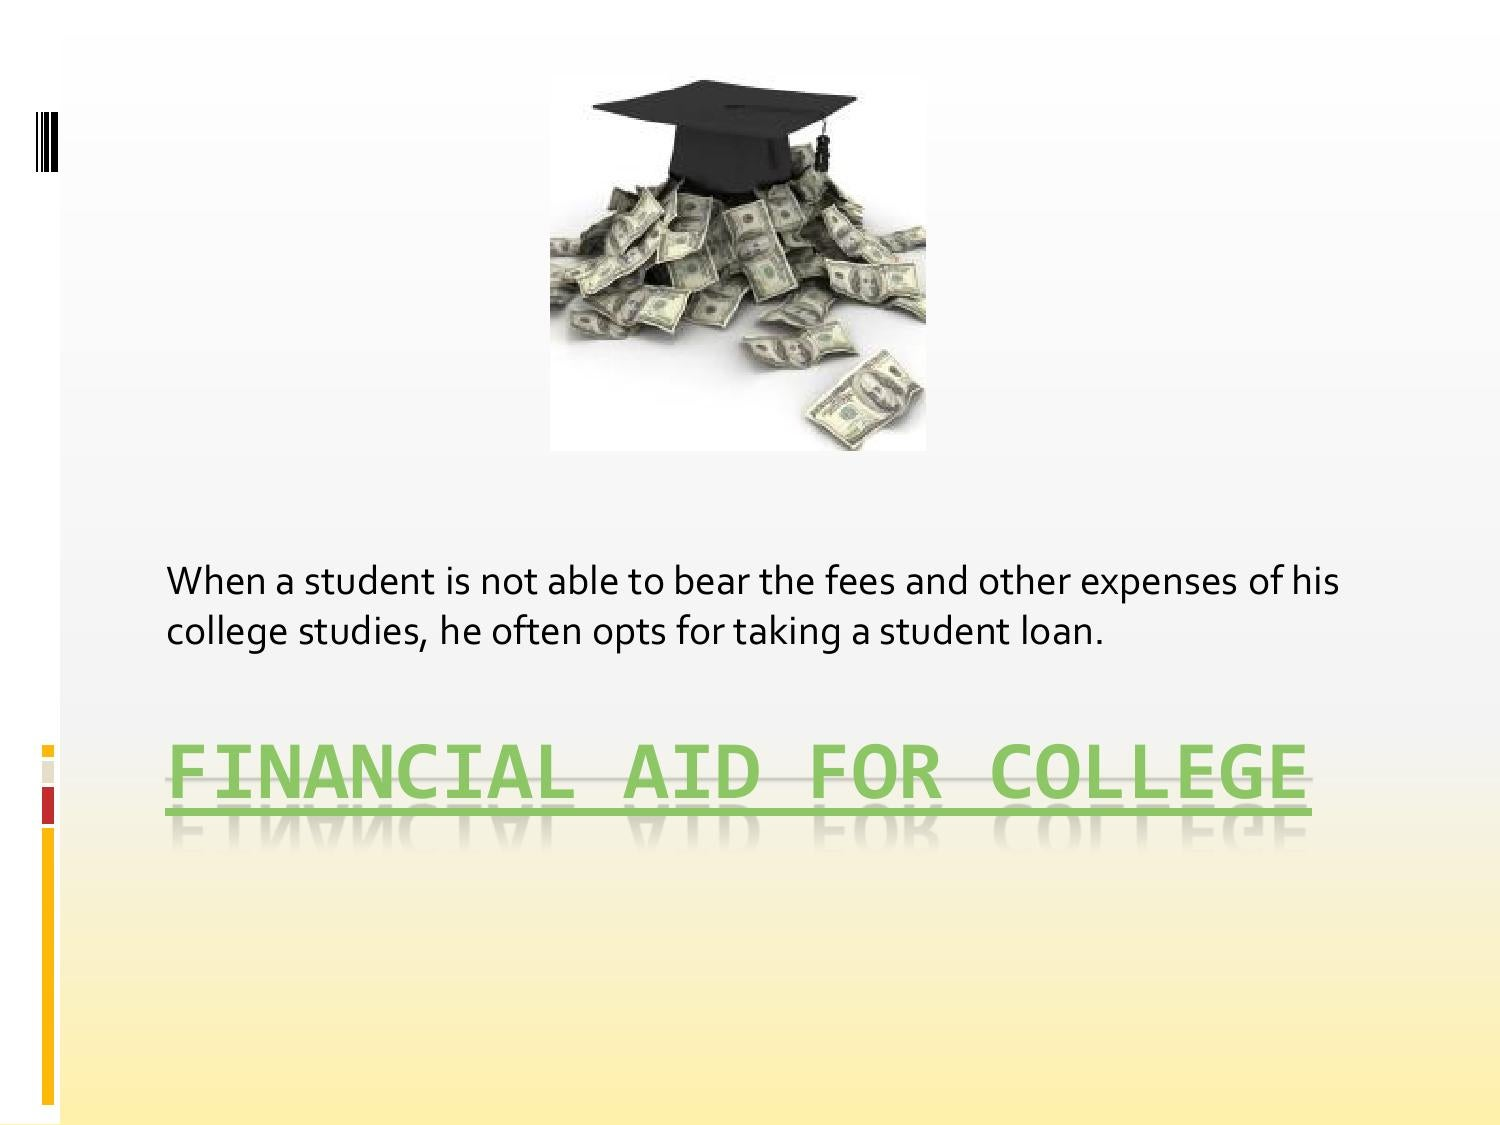 Financial aid for college by Apply For Personal Loan - issuu